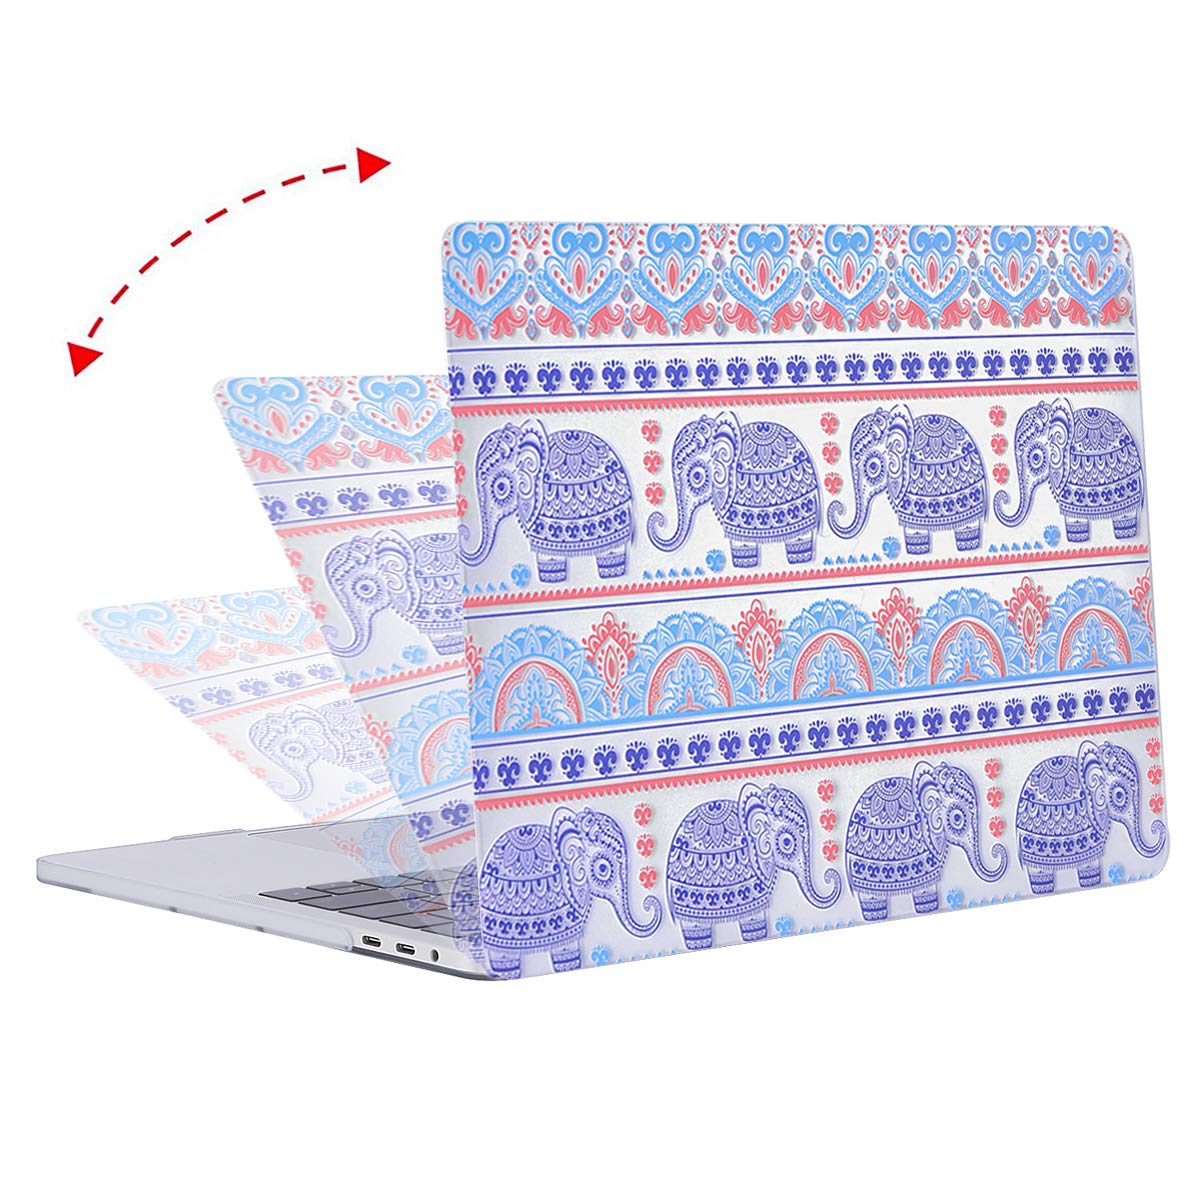 Cute Cartoon Cat Plastic Pattern Hard Case Shell Cover Compatible with MacBook Pro 13 with//without Touch Bar MOSISO MacBook Pro 13 inch Case 2016-2019 Release A2159 A1989 A1706 A1708